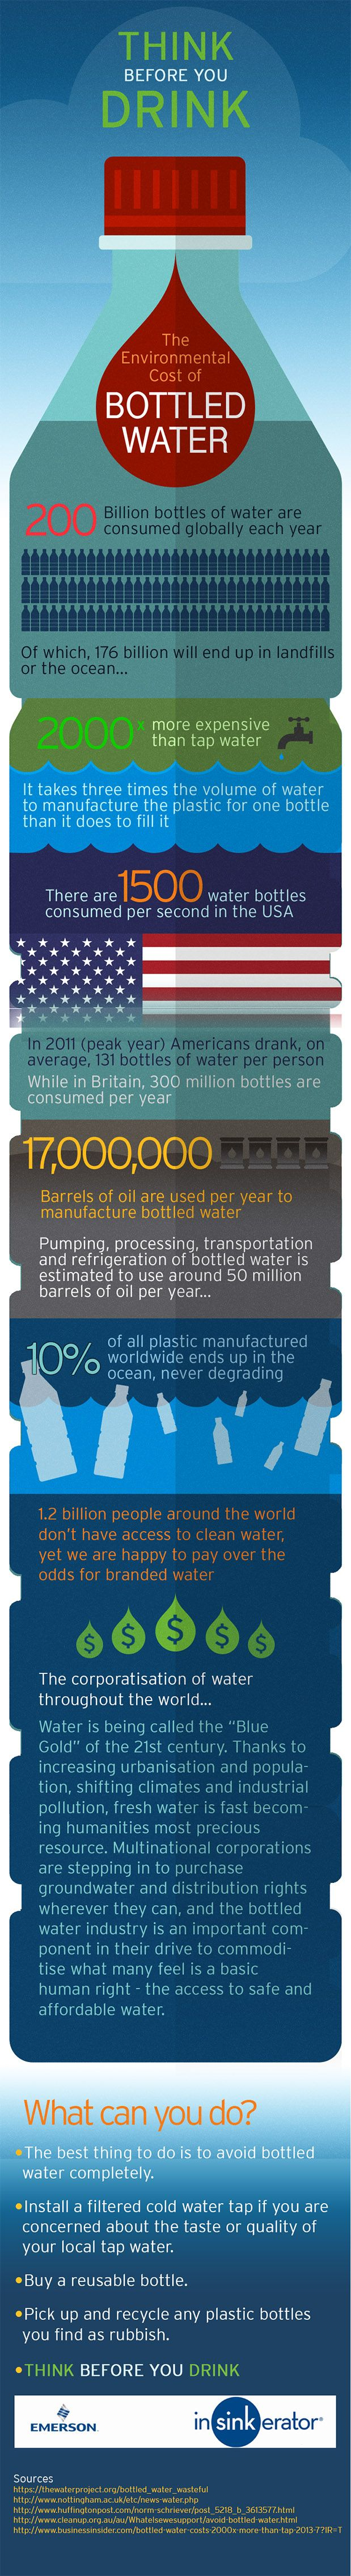 Environmental costs of bottled water. Infographic from Insinkerator